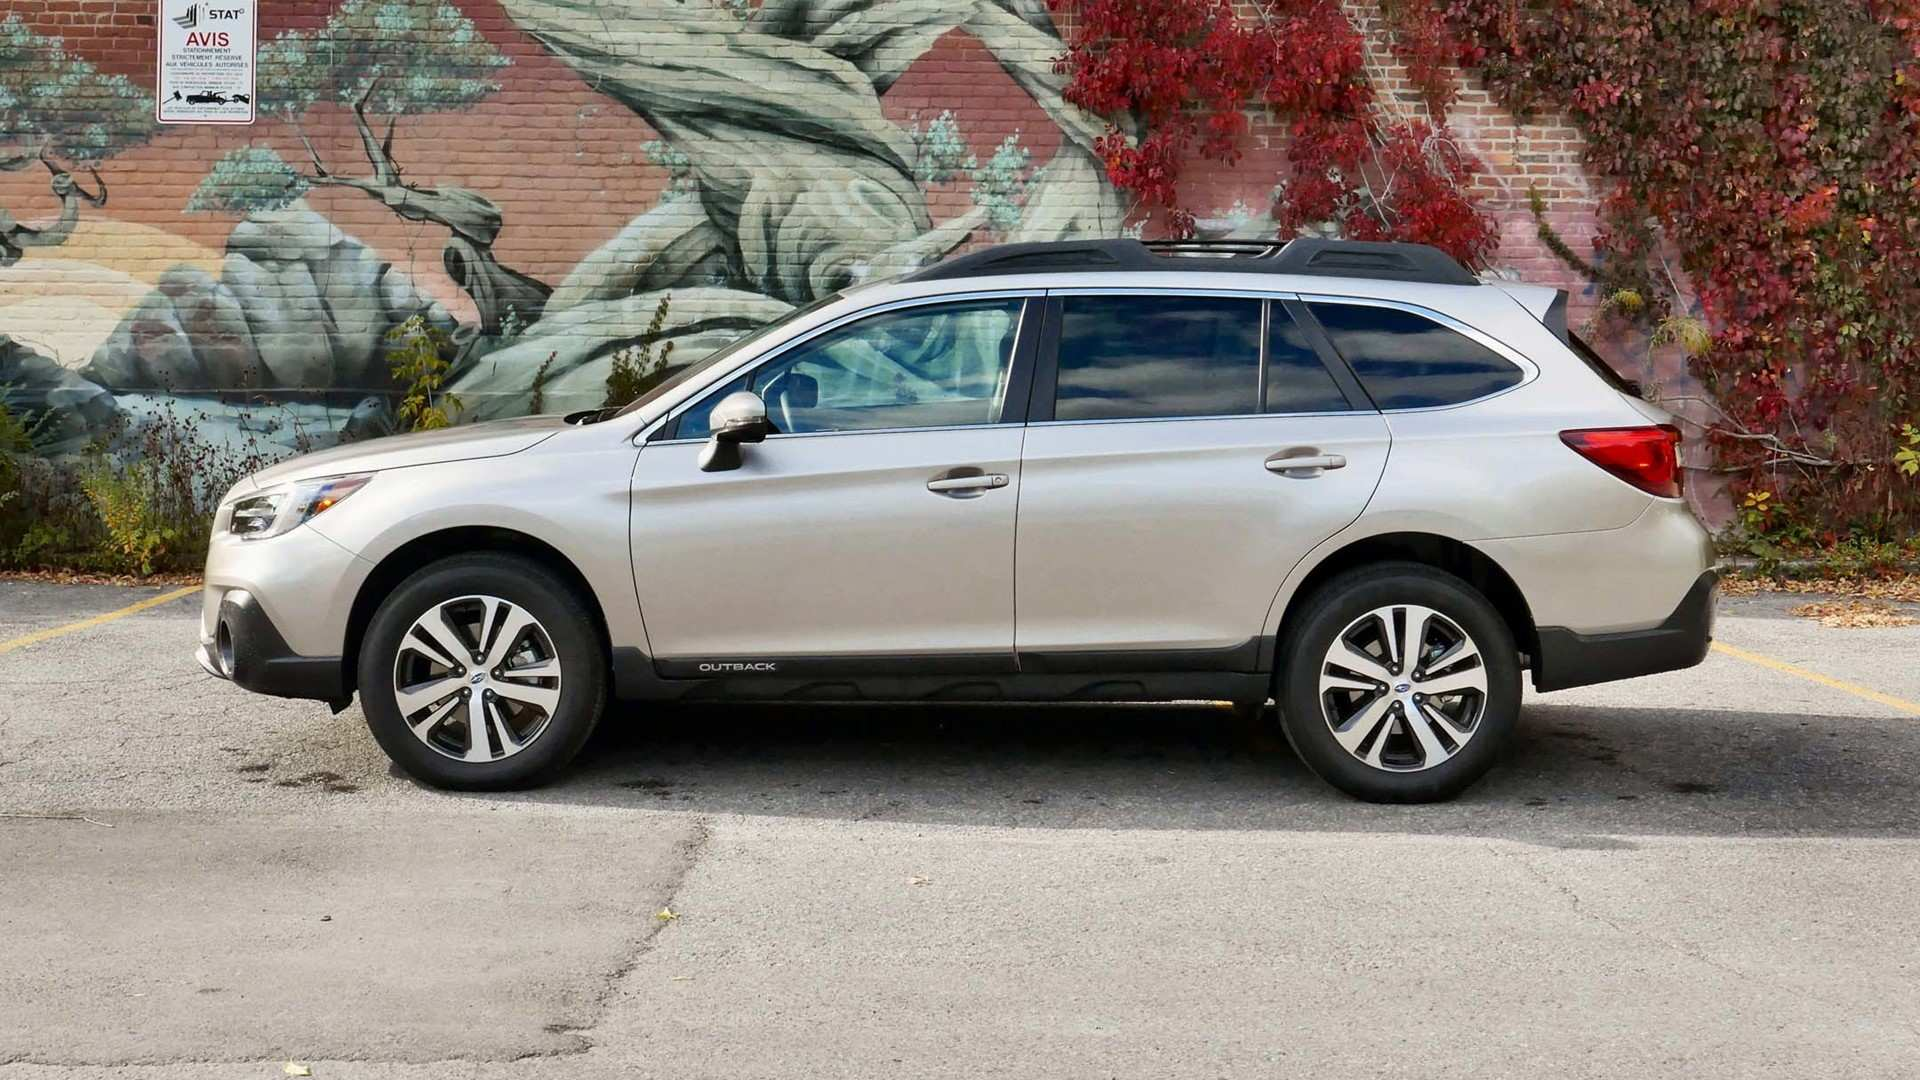 46 Concept of Best Subaru Outback 2019 Canada Review First Drive with Best Subaru Outback 2019 Canada Review